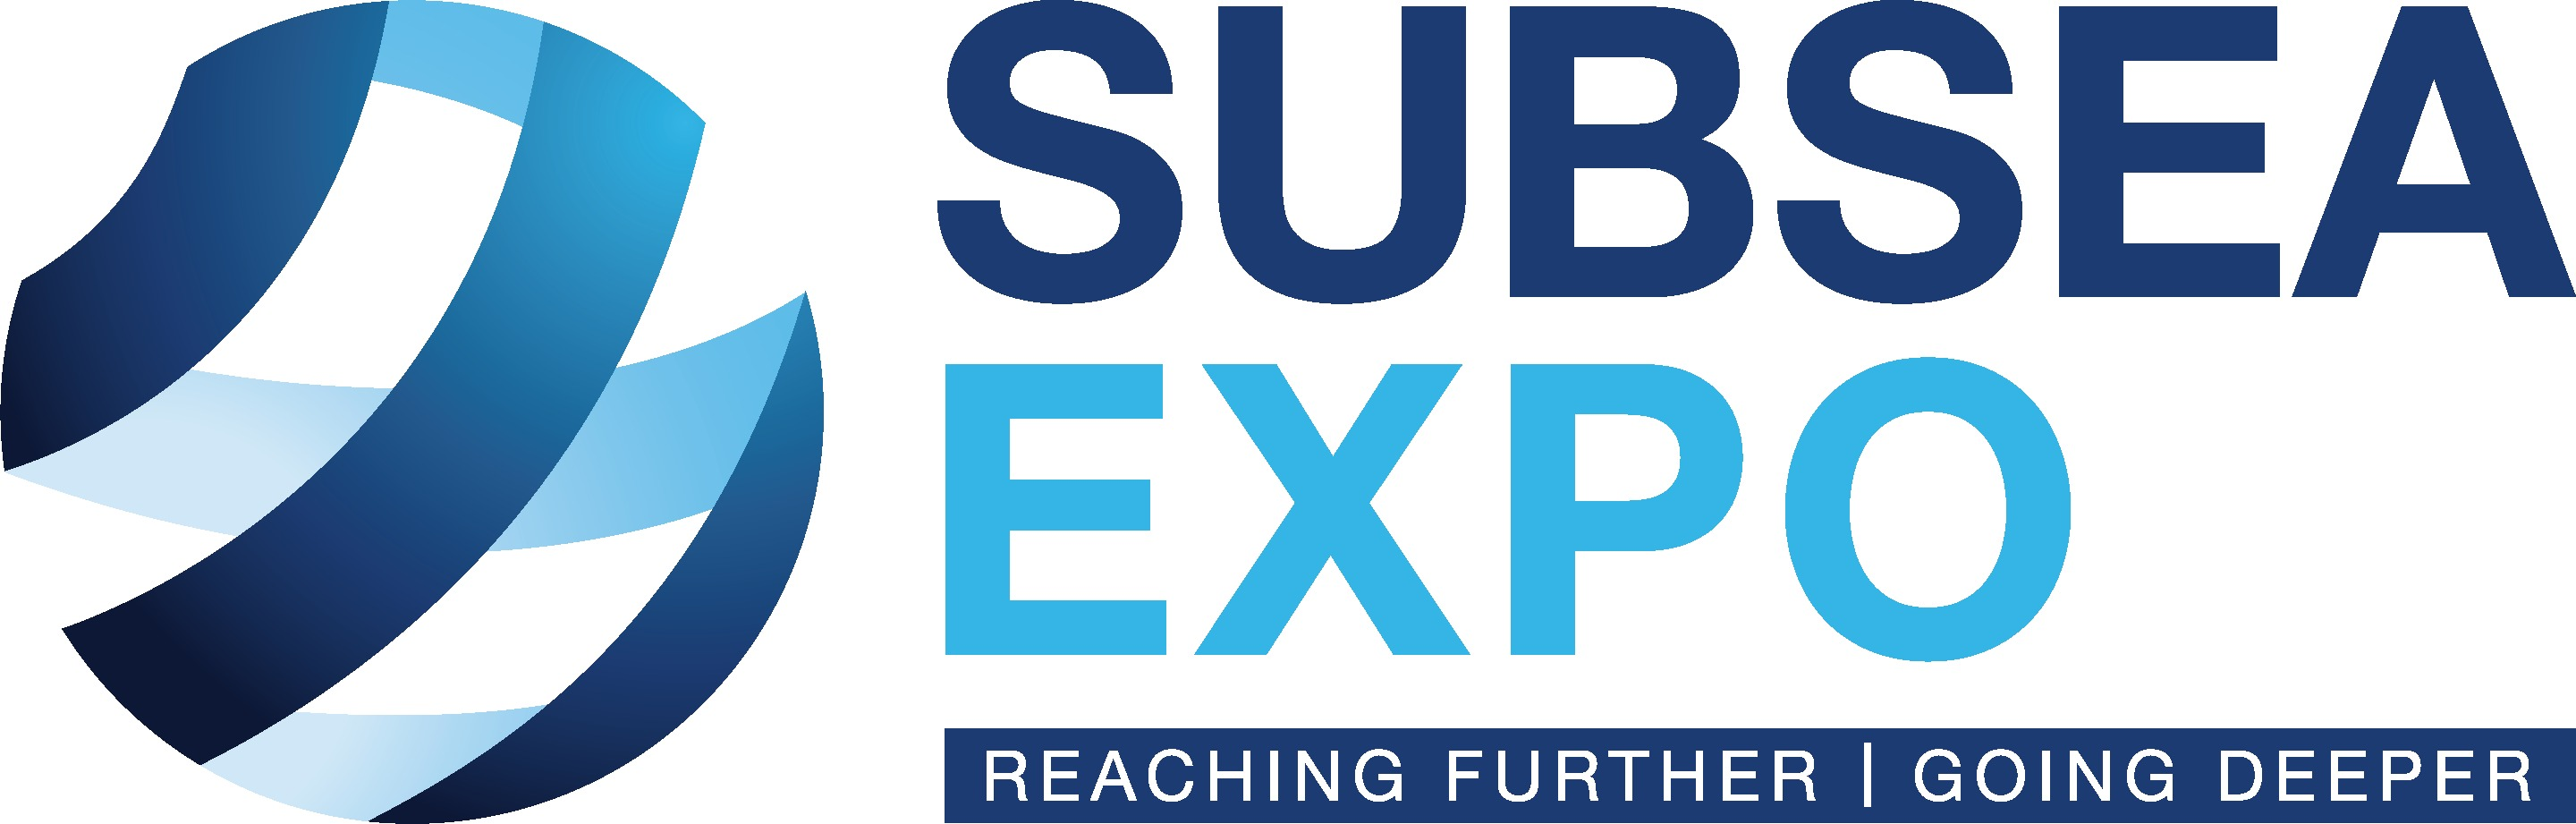 Bignall to attend Subsea Expo